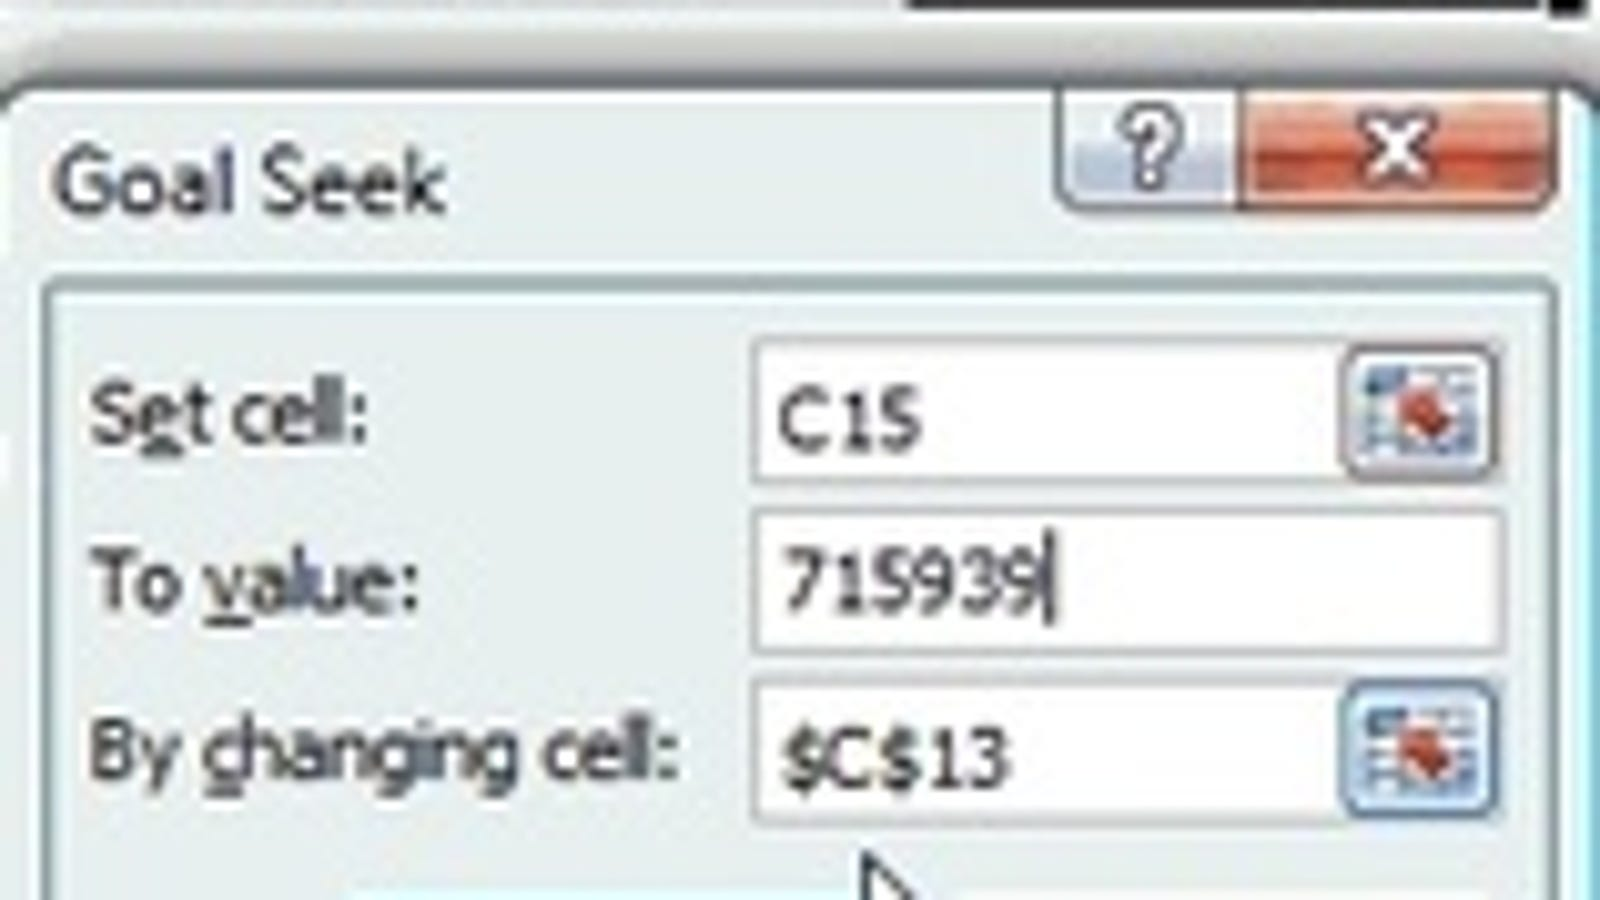 plan your retirement with excel s goal seek function